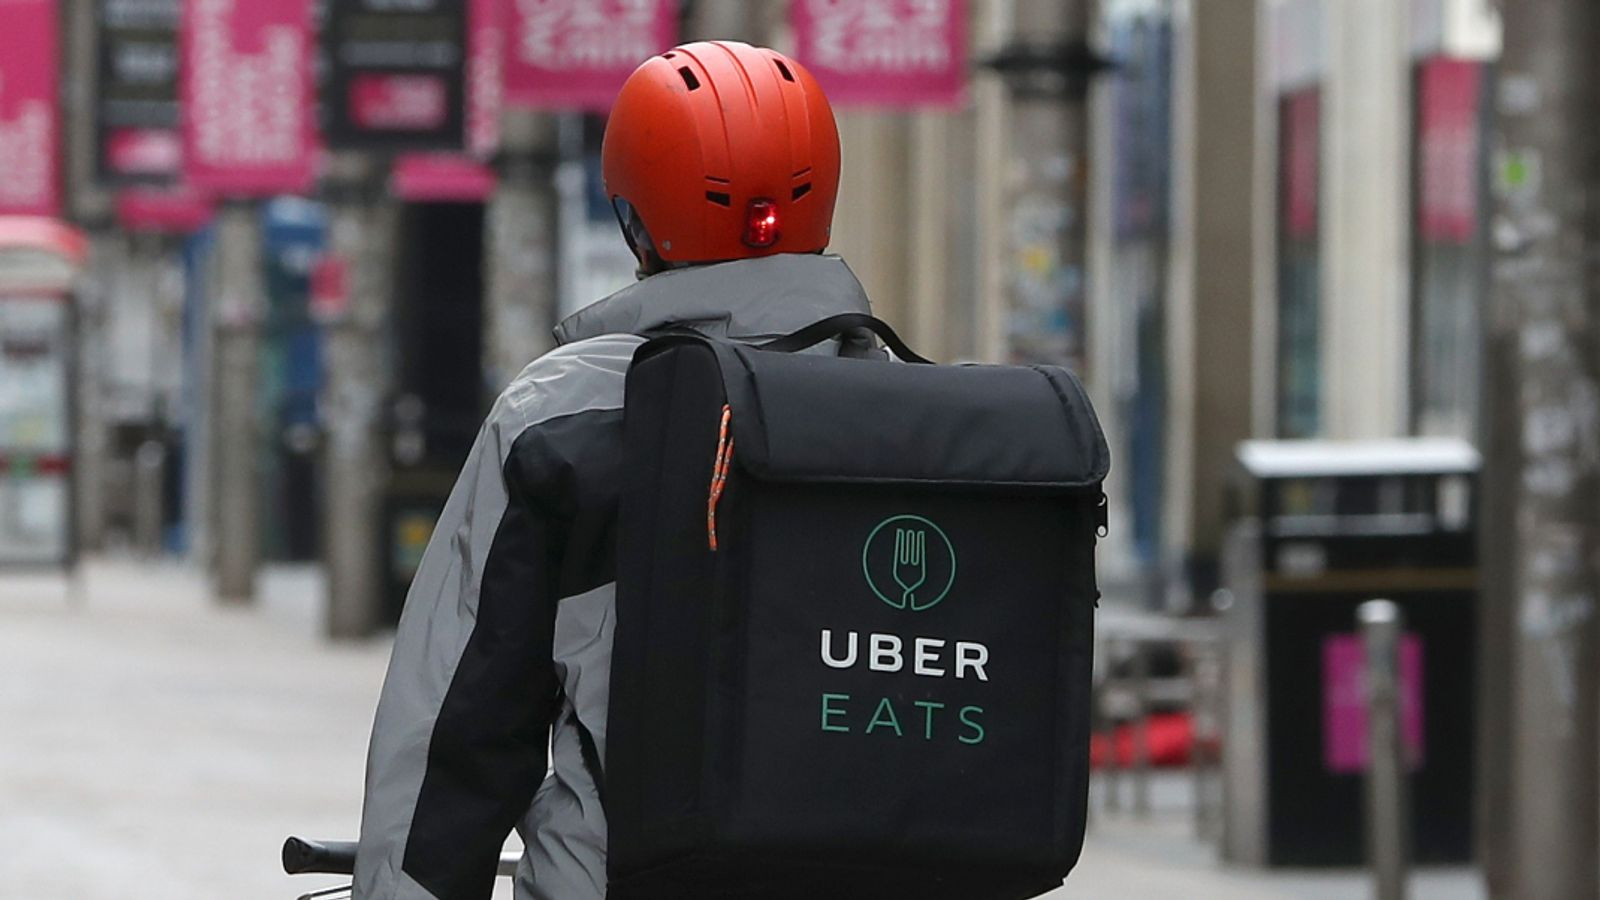 COVID-19: Uber, Bolt and Deliveroo among firms to offer vaccinated people discounts and vouchers